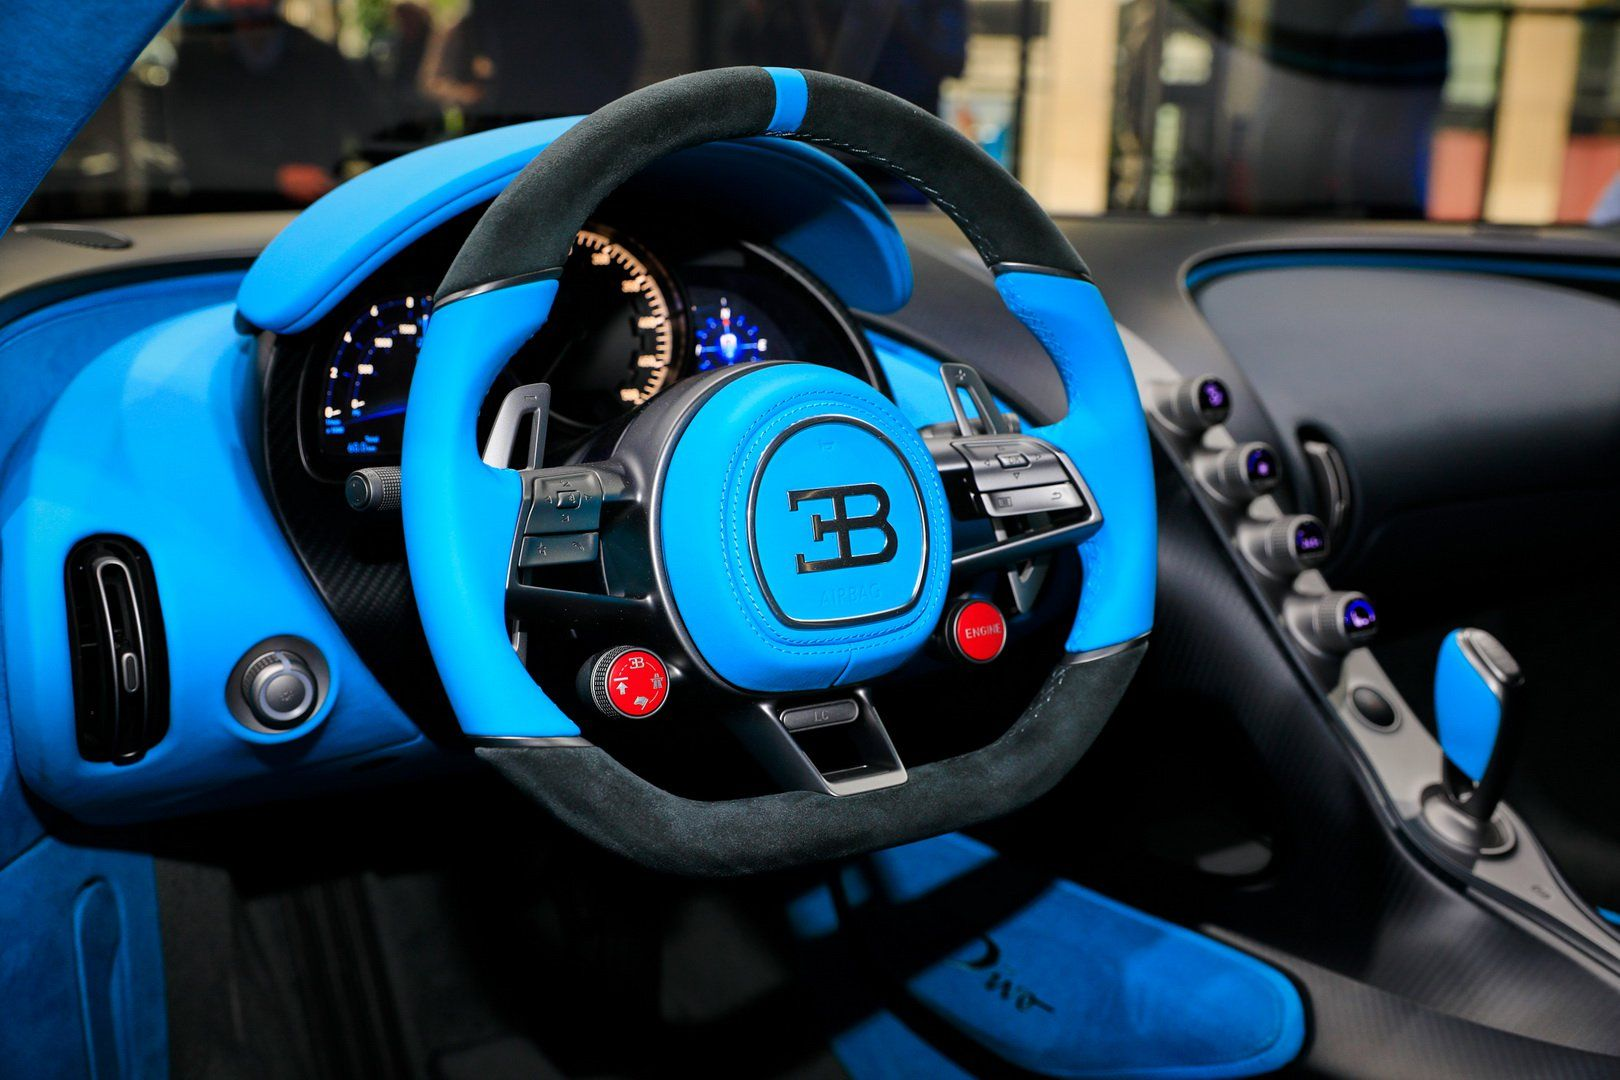 Bugatti Divo Looks Spectacular Under Any Light Check It Out In 92 Images From Paris Carscoops In 2020 Bugatti Bugatti Cars Super Cars